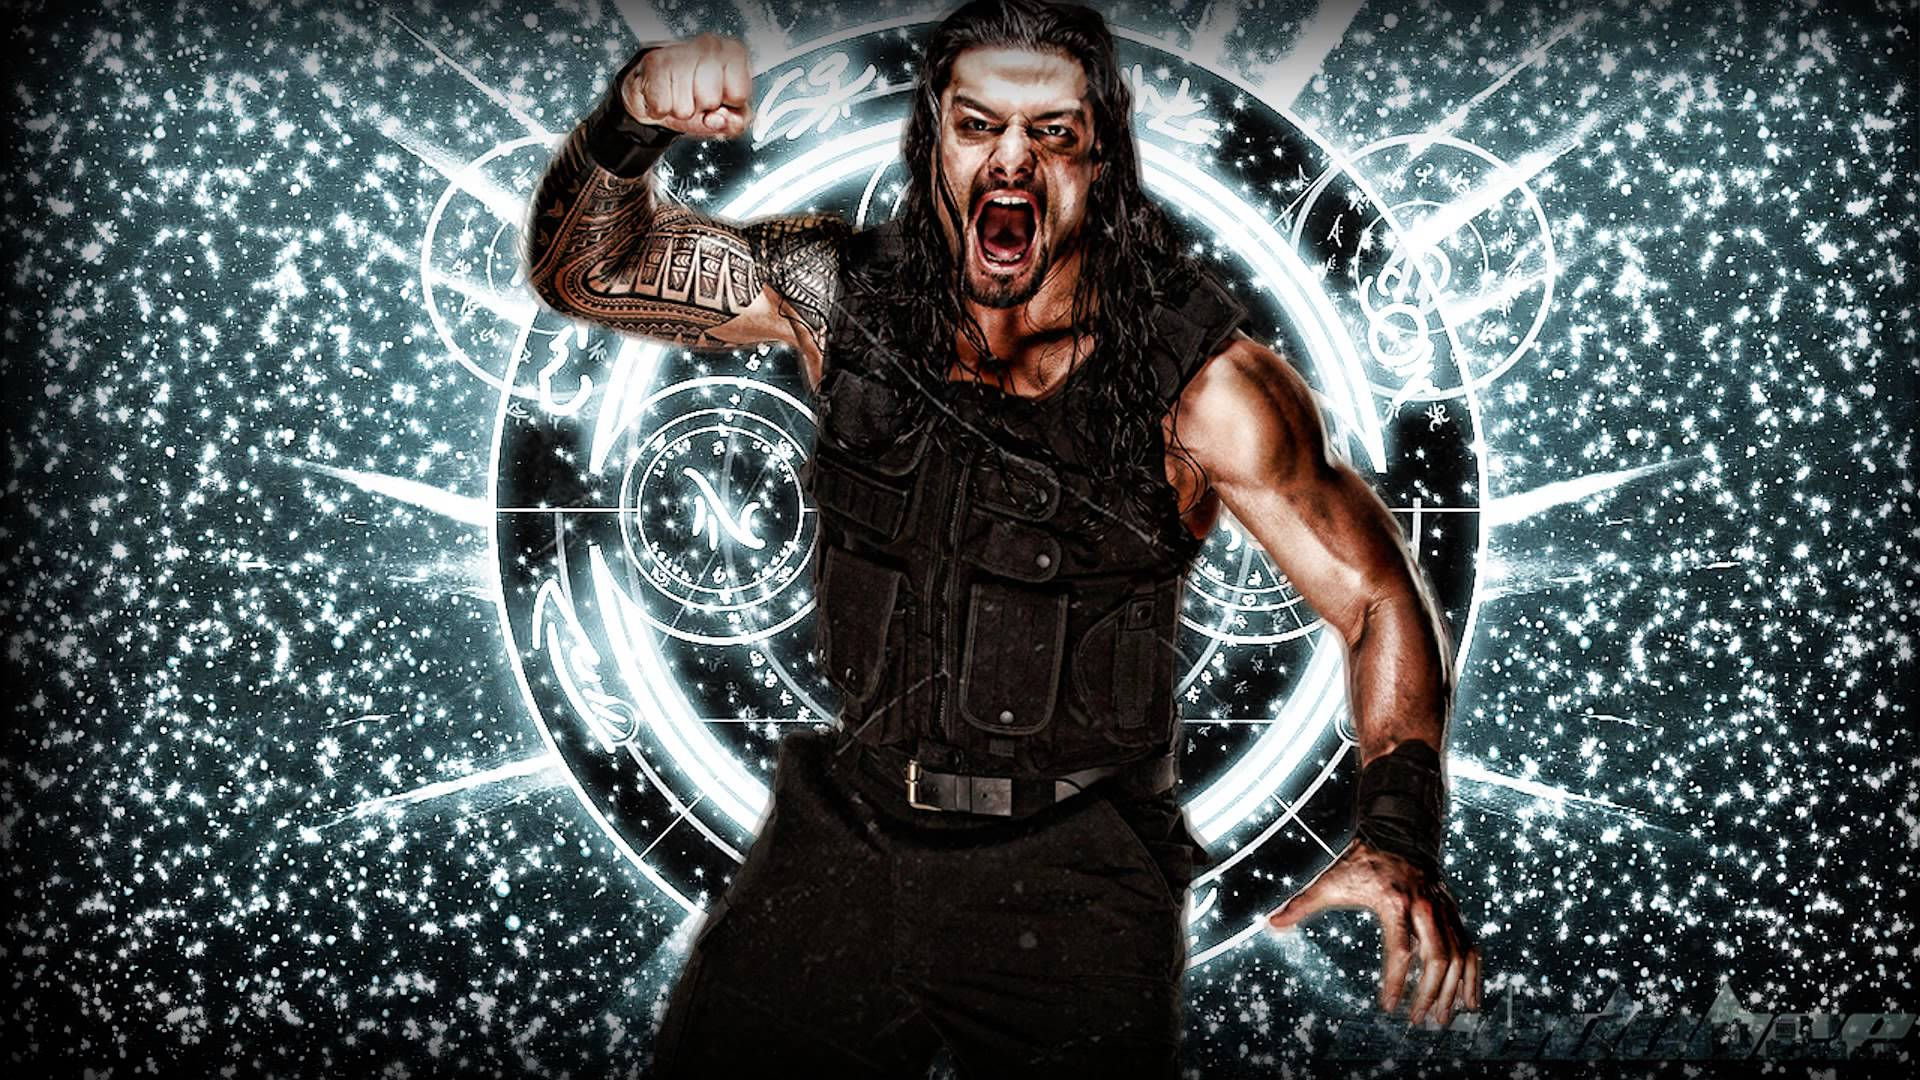 Roman Reigns Logo Wallpapers 1920x1080